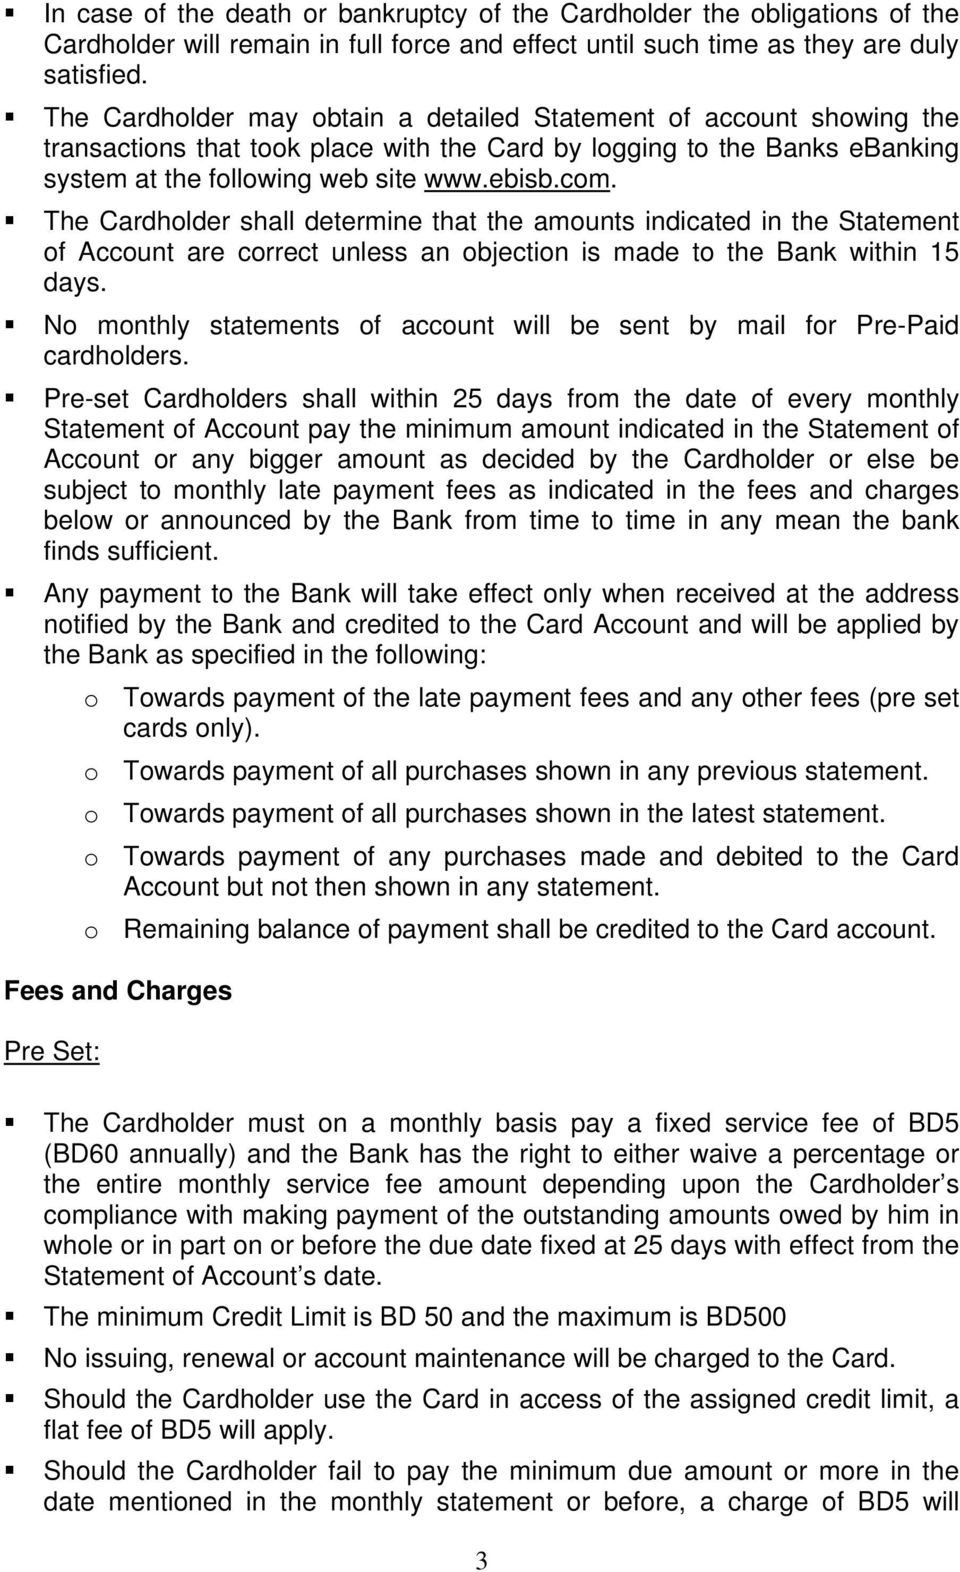 The Cardholder shall determine that the amounts indicated in the Statement of Account are correct unless an objection is made to the Bank within 15 days.